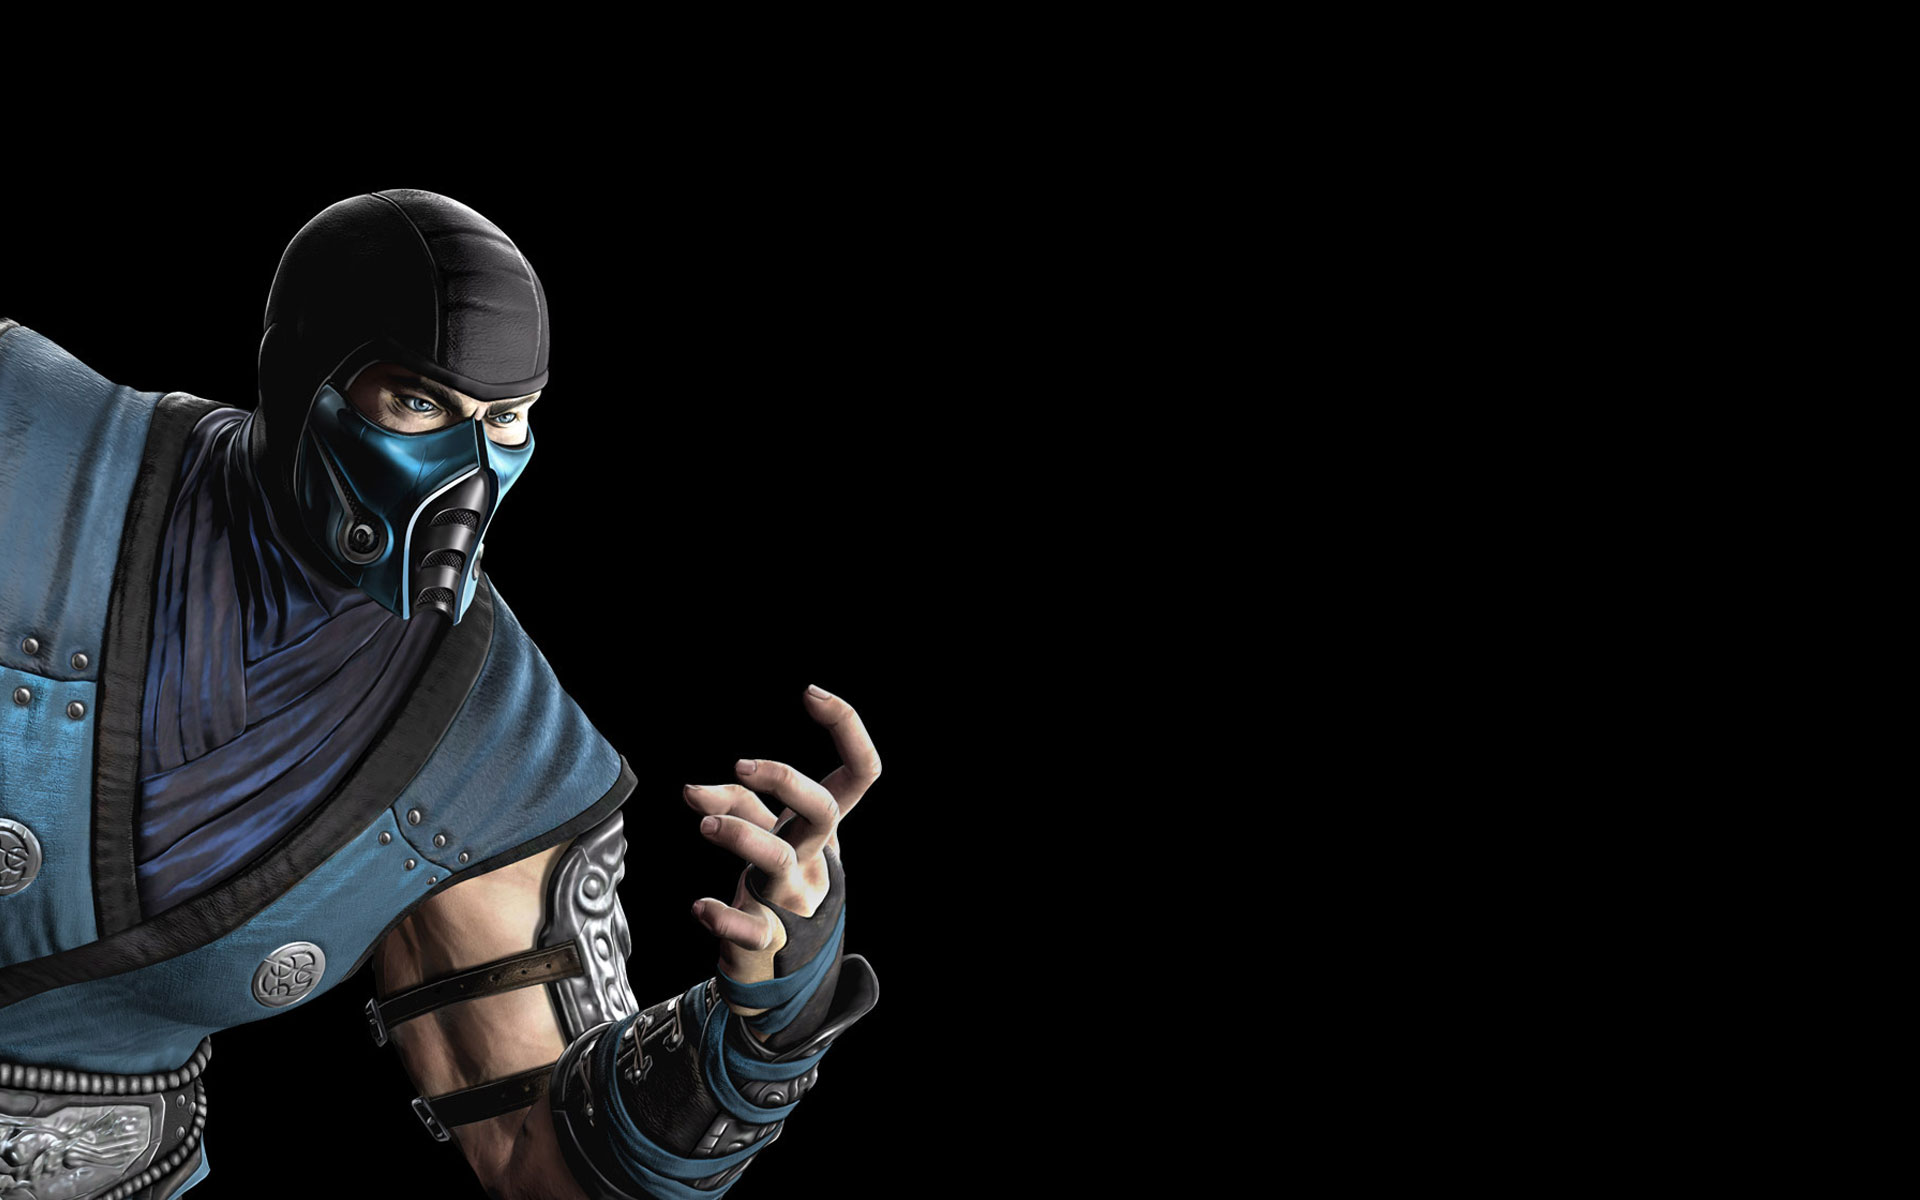 mortal kombat x hd wallpaper download